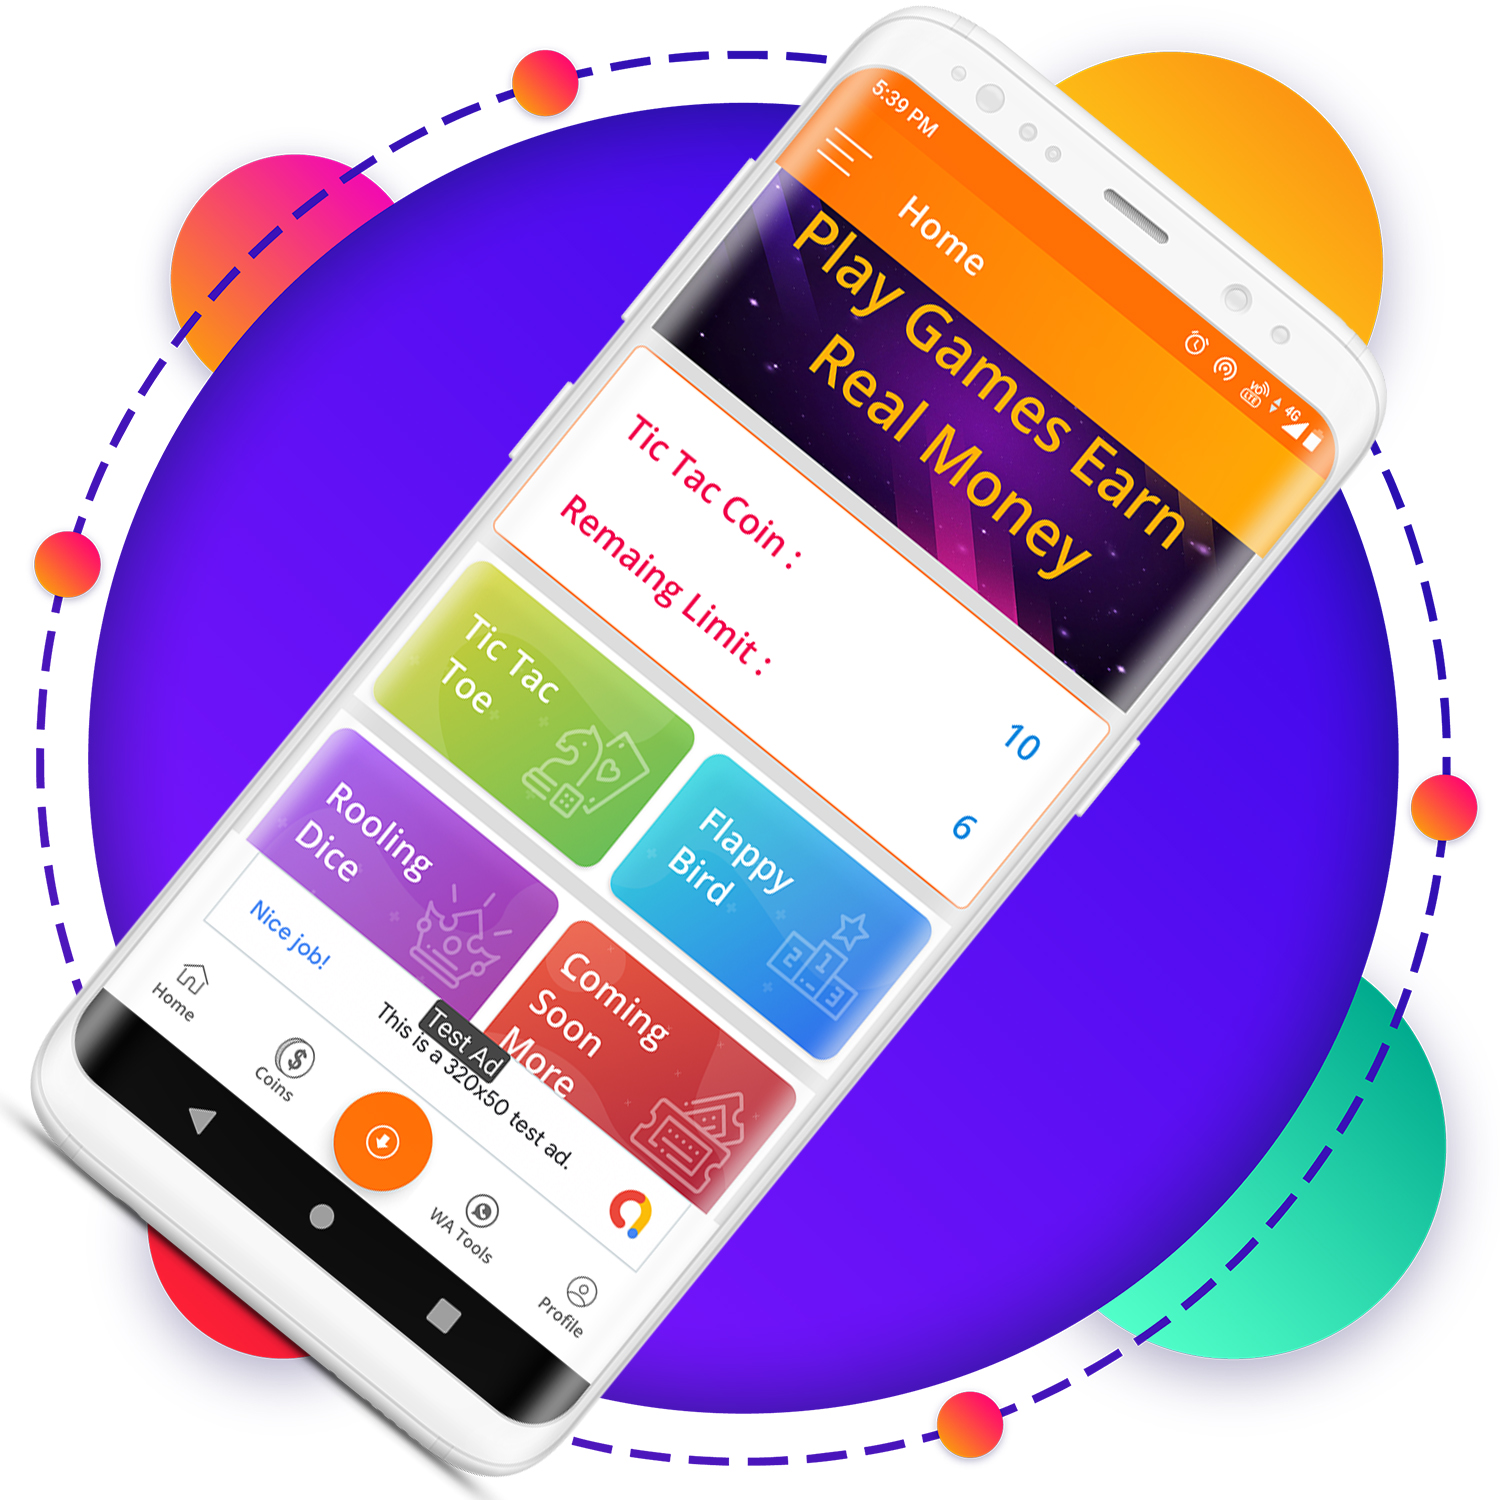 QuickCash All In One Money Earning Android App + Games + WhatsApp Tools + Earning System Admin Panel - 12